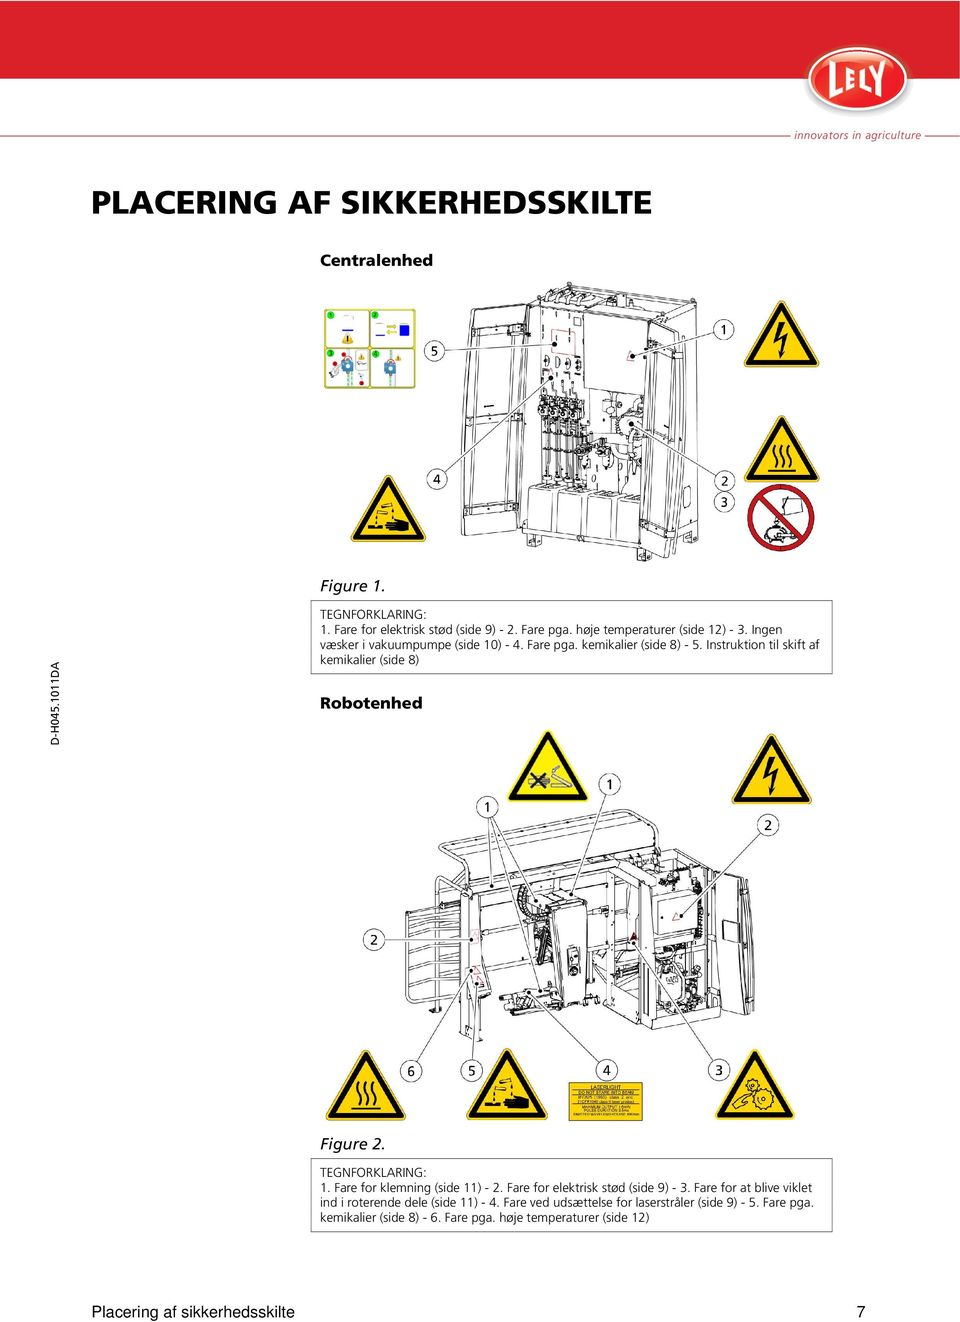 Instruktion til skift af kemikalier (side 8) Robotenhed Figure 2. TEGNFORKLARING: 1. Fare for klemning (side 11) - 2. Fare for elektrisk stød (side 9) - 3.